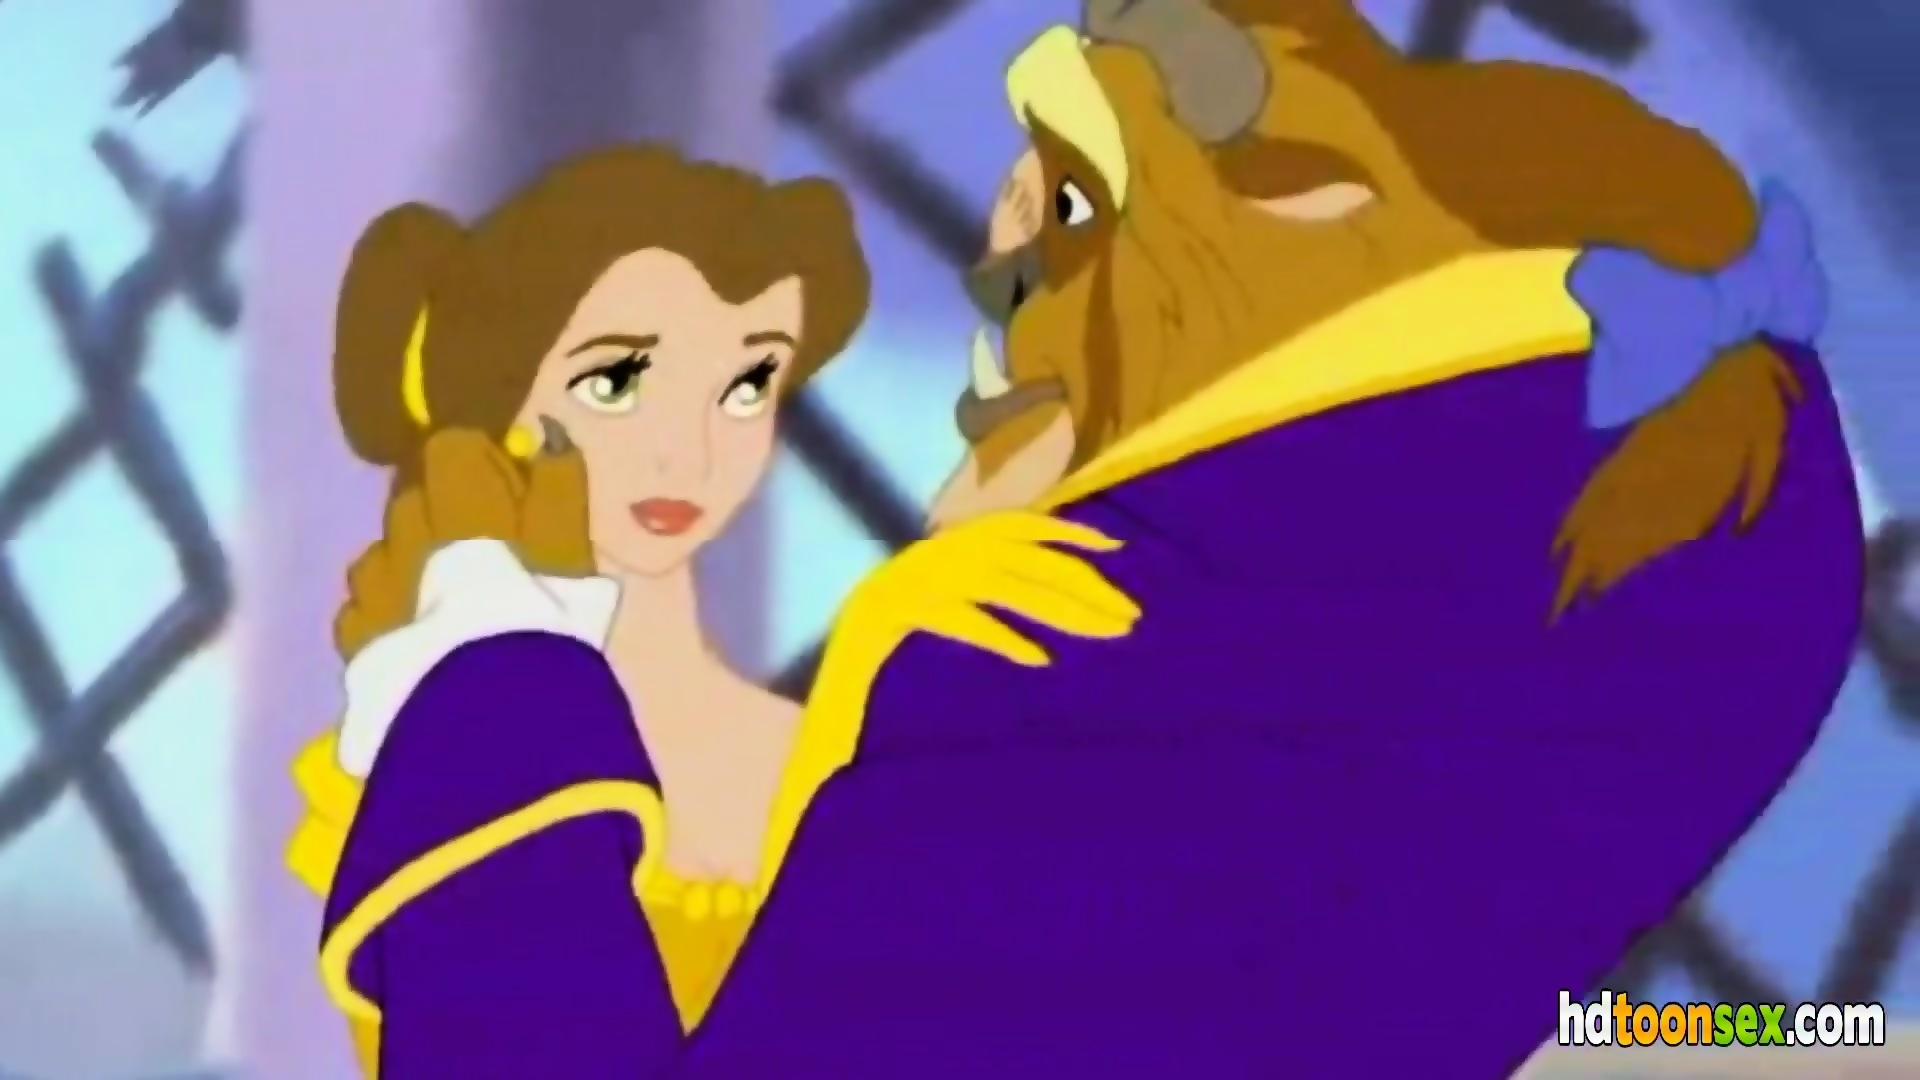 The beauty xxx and beast Beauty and